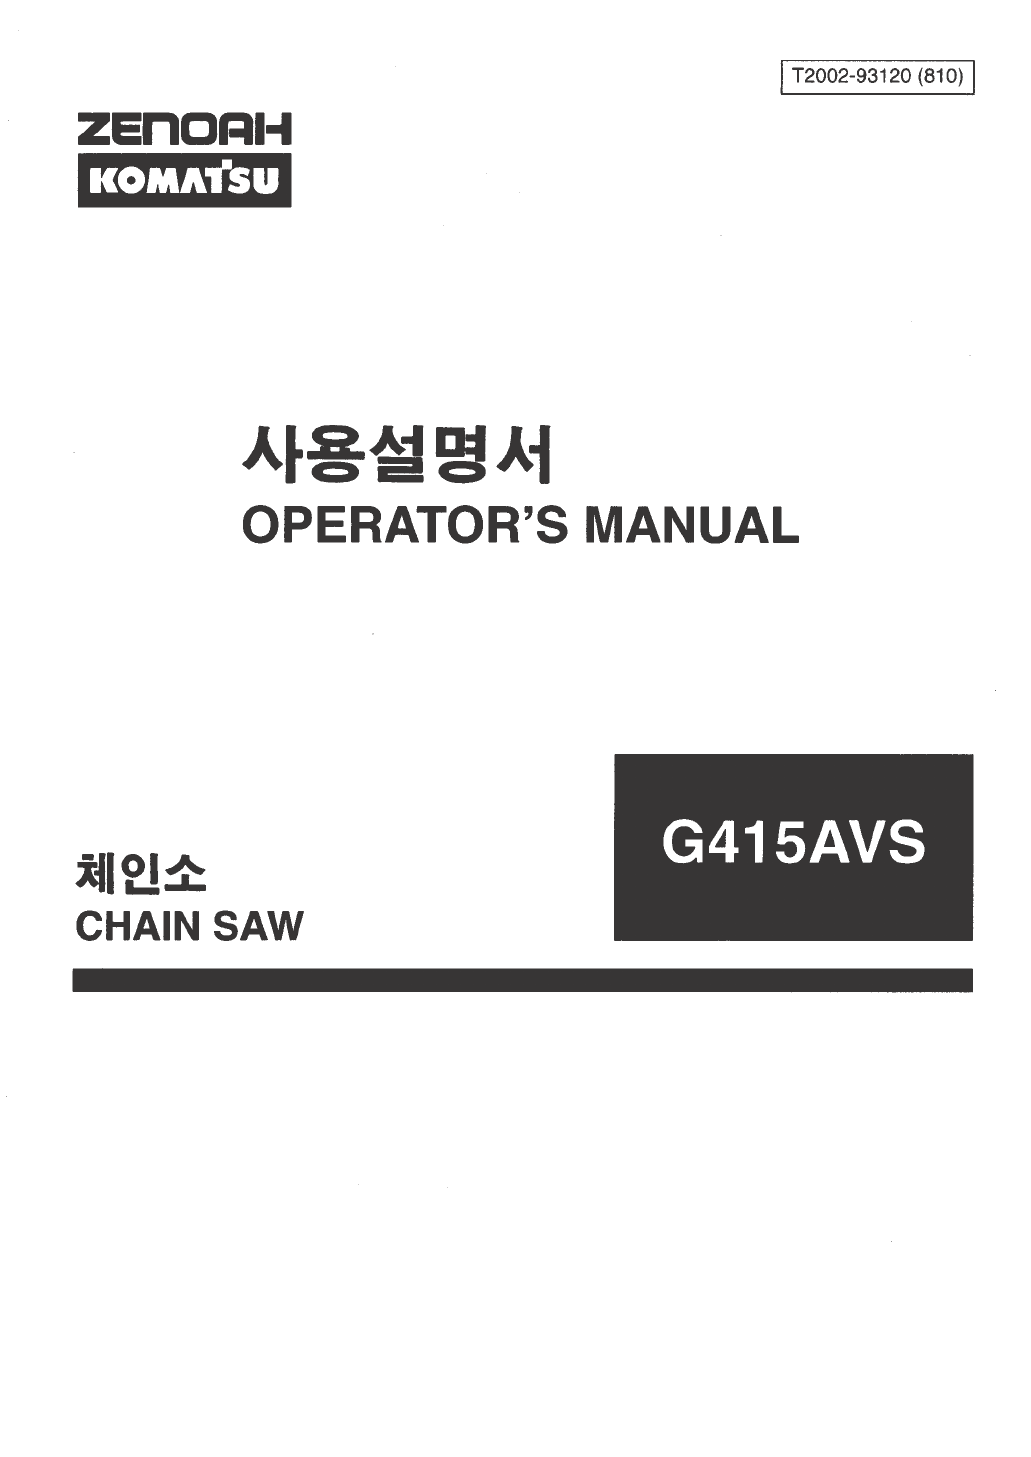 Zenoah Chainsaw G415AVS manual